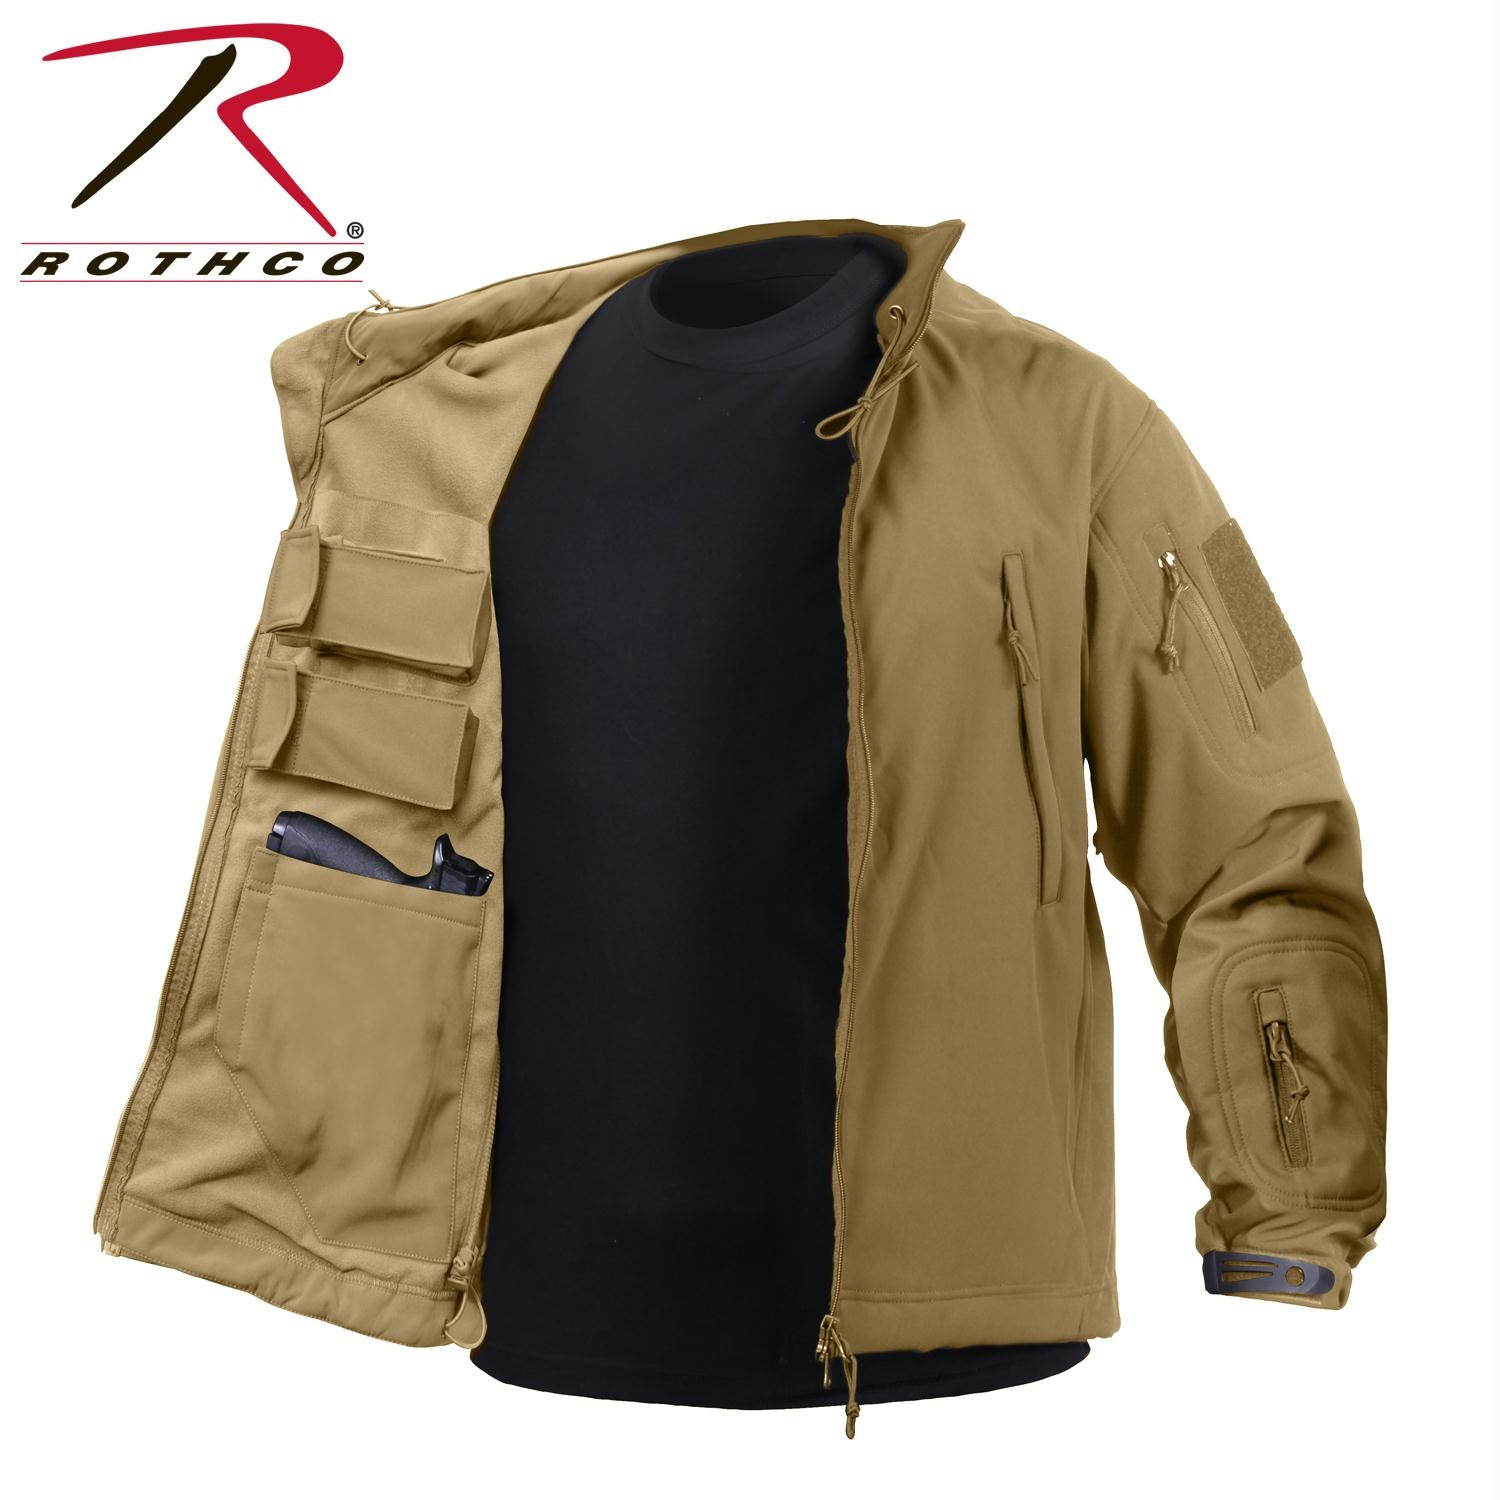 Rothco Concealed Carry Soft Shell Jacket - Coyote Brown / 2XL